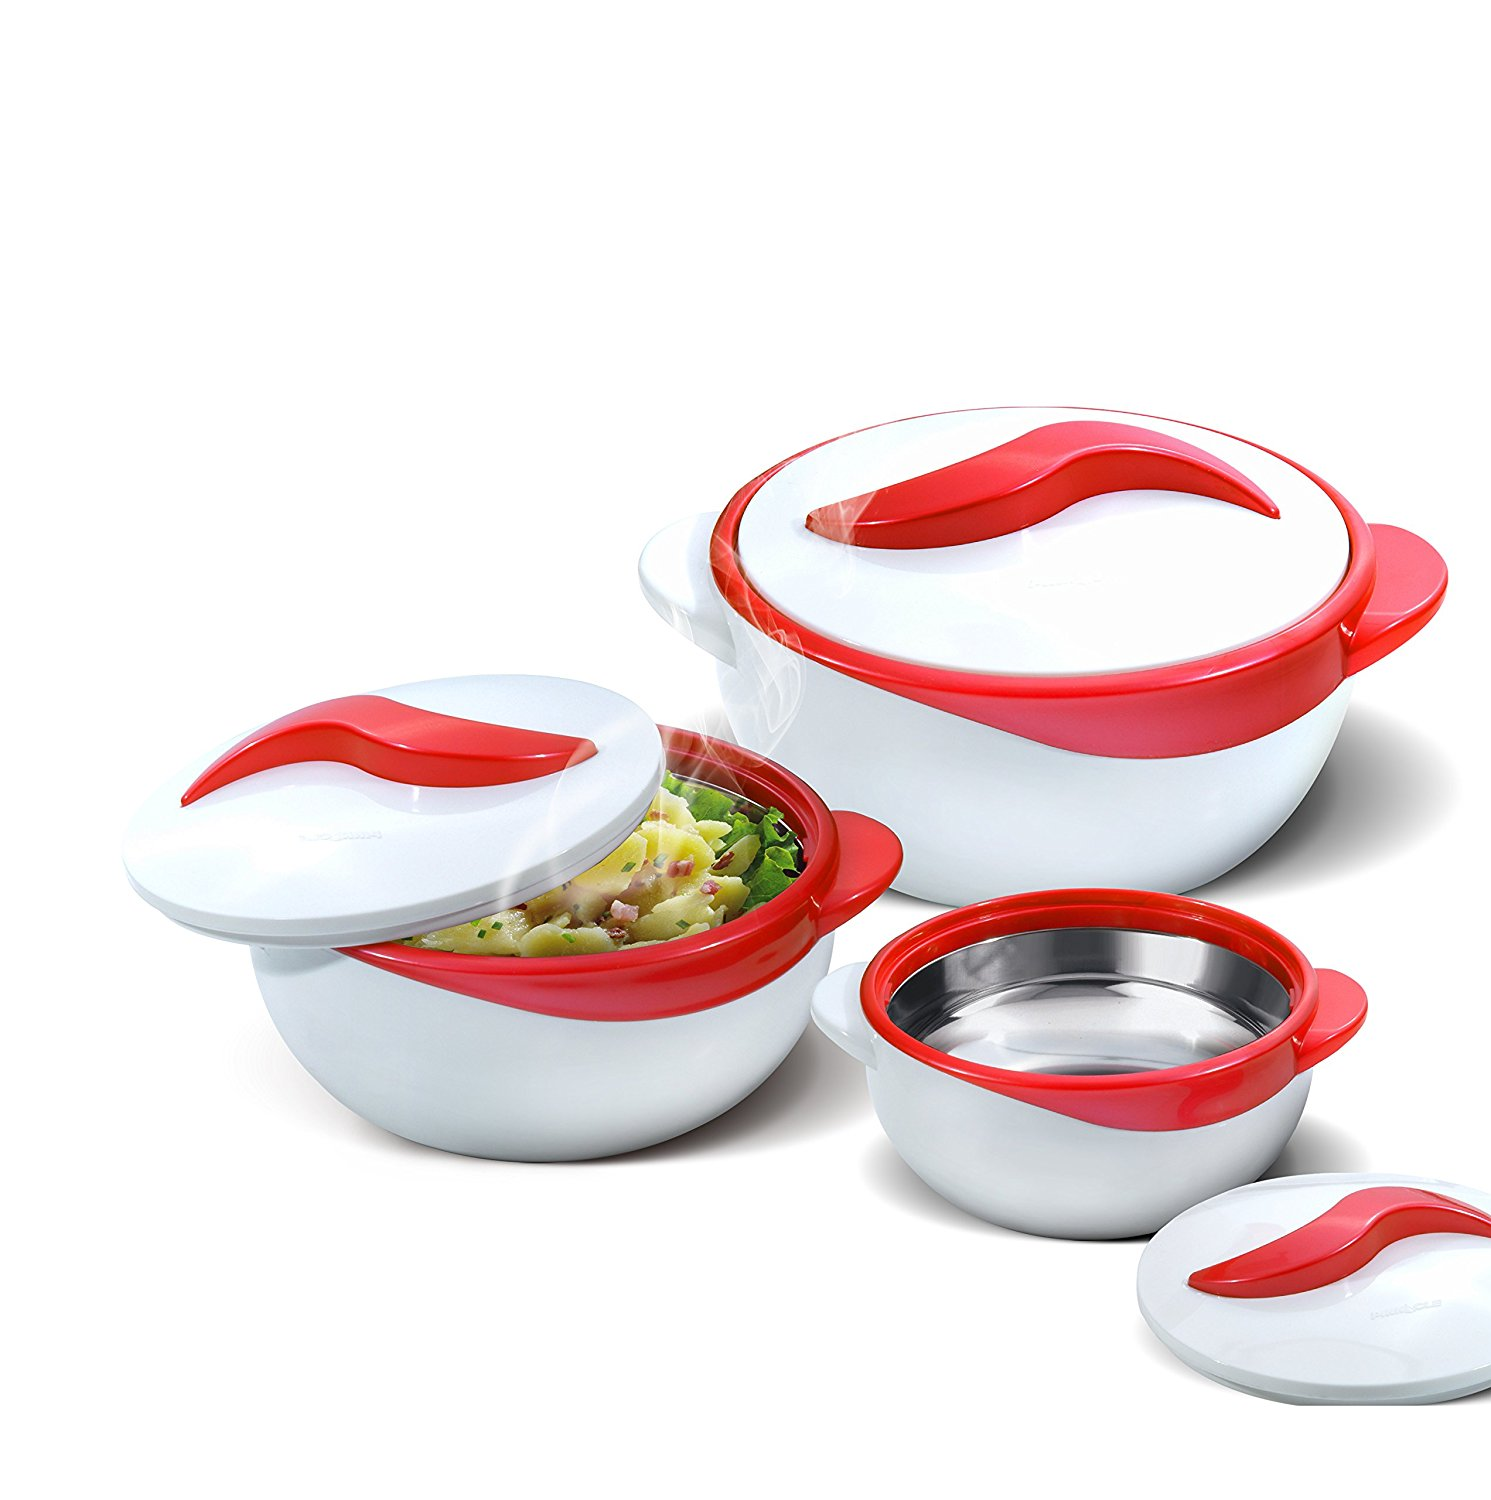 Set of 3 Thermo Dish Hot or Cold Casserole Serving Bowls ...